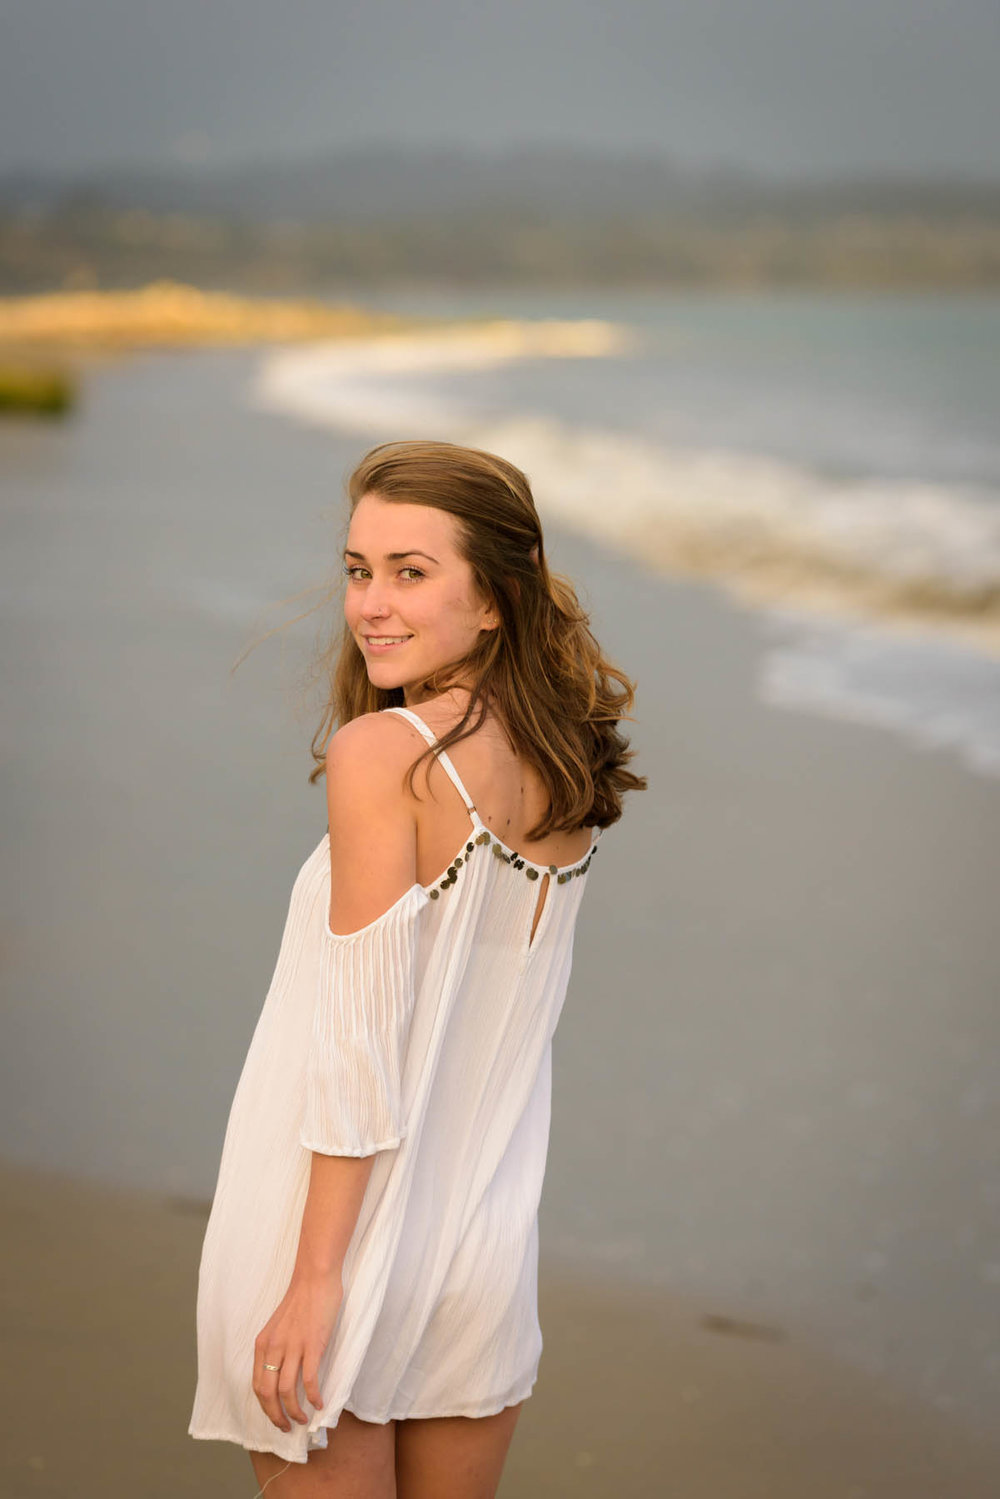 7922_Morgan_Capitola_Beach_Senior_Portrait_Photography.jpg